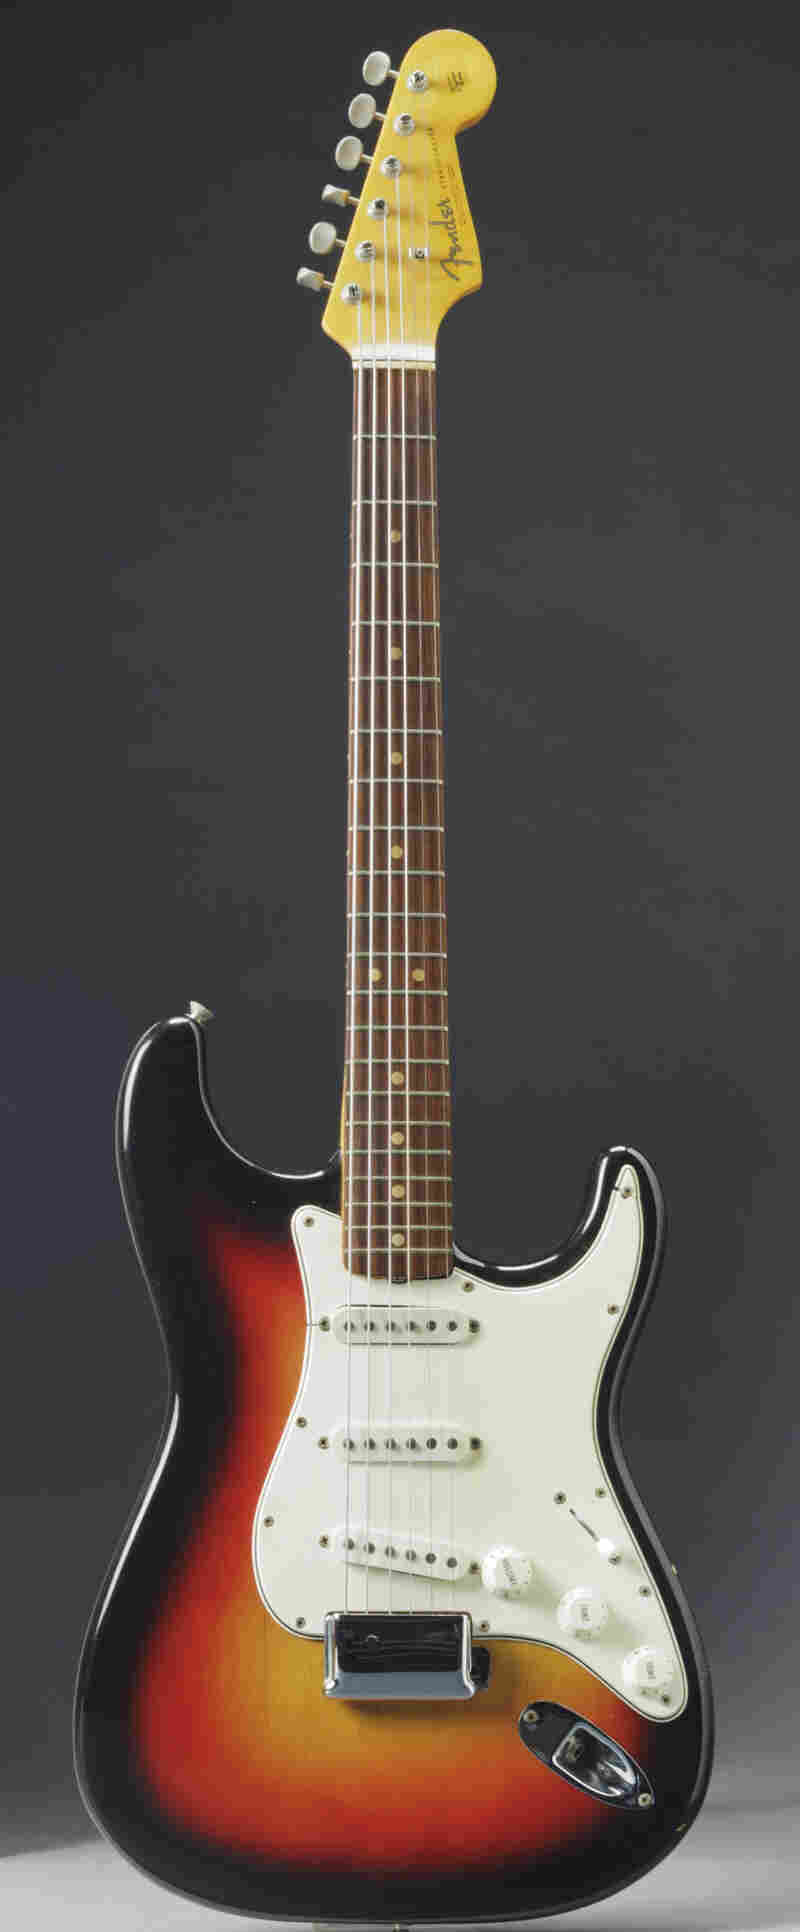 "The Fender Stratocaster that's going on sale next month and may fetch $500,000 because experts say it was played by Bob Dylan when he ""went electric"" at the 1965 Newport Folk Festival."